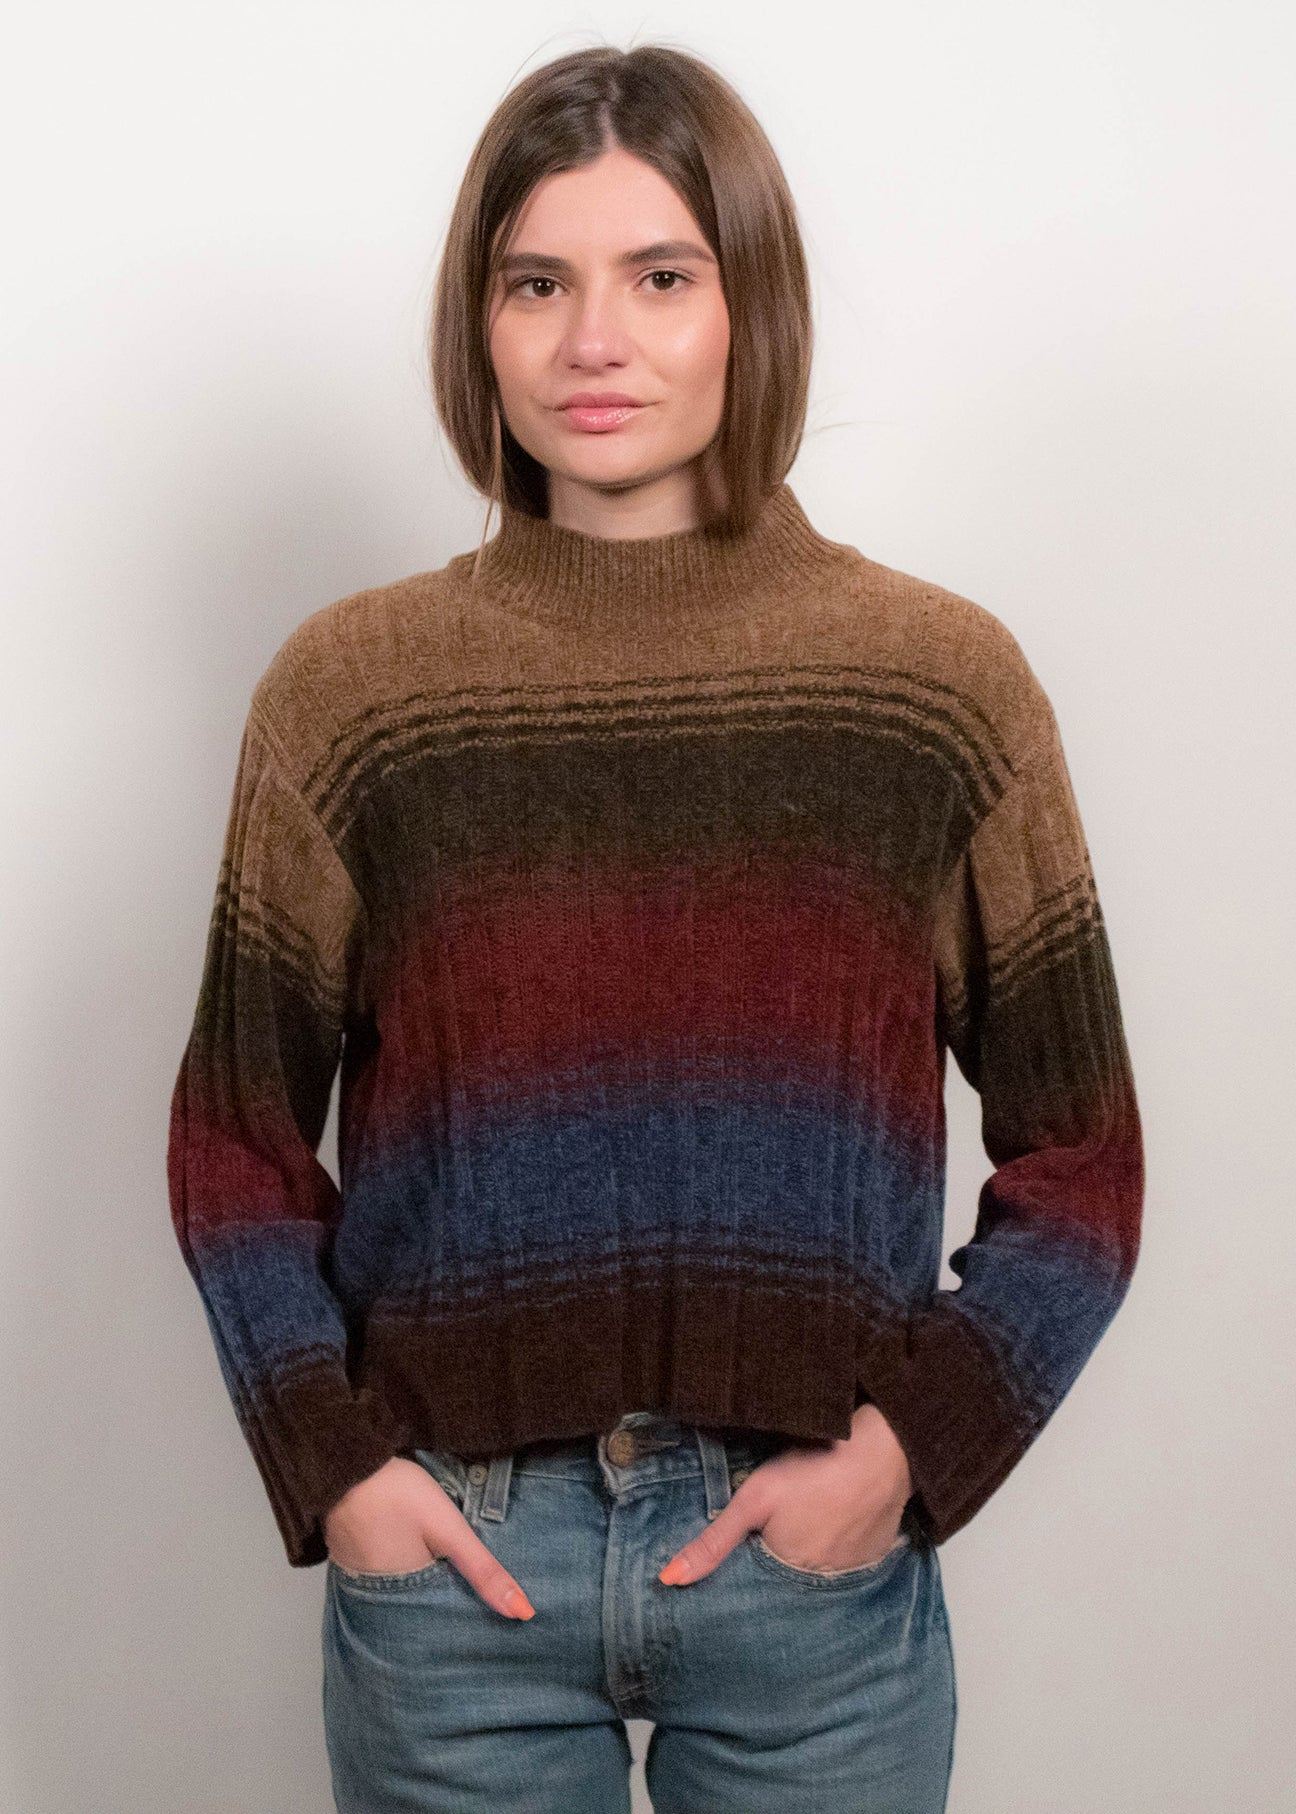 90s Chunky-Knit Ombre Sweater